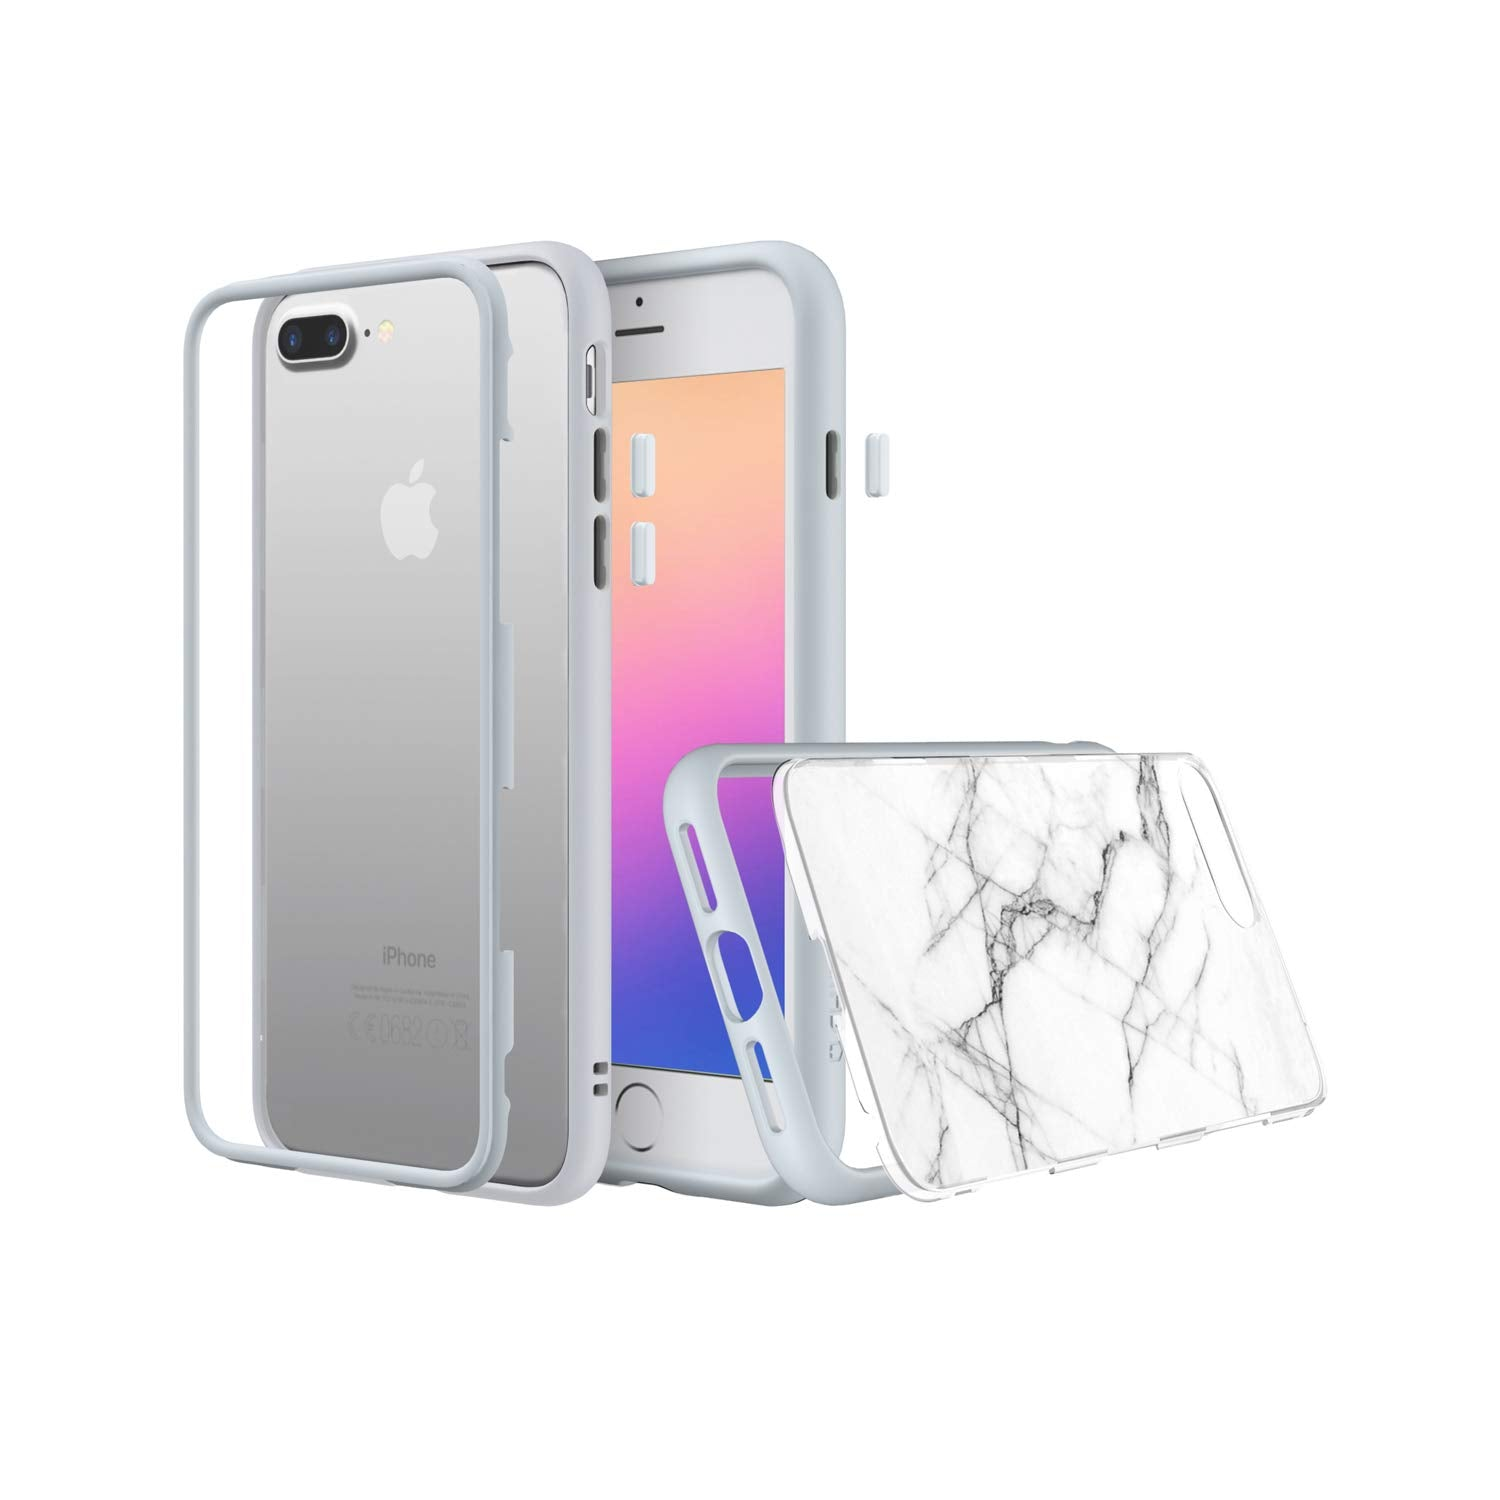 RhinoShield MOD Bundle For IPhone 7 Plus/8 Plus (with Rim, Button, Frame, White Roma Marble Back Plate